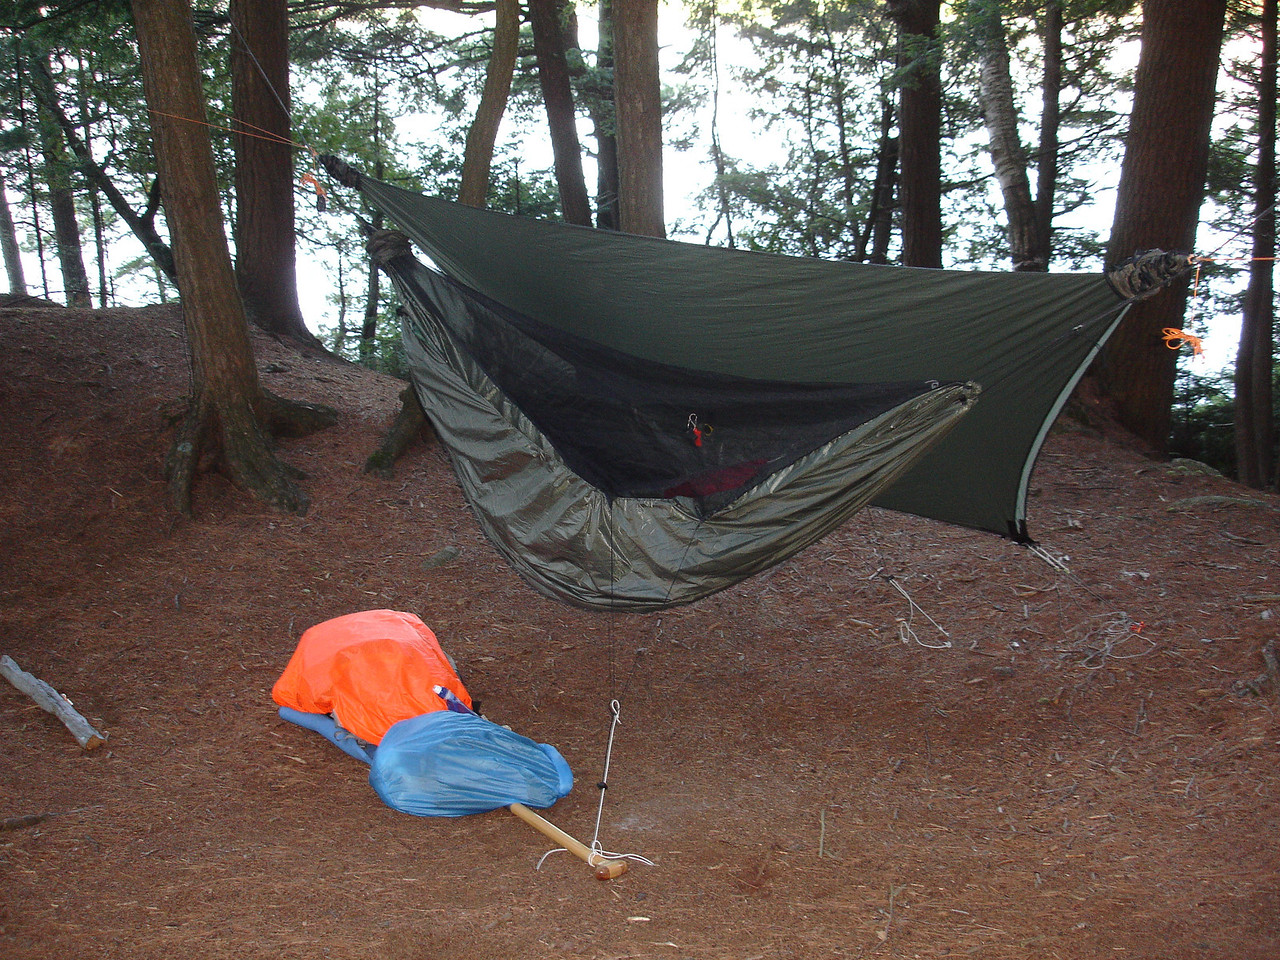 Blackbird hammock.  Tried out a new under-quilt protector from 2QZQ.  It protects the down under-quilt from rain splash, stops the wind from robbing the quilt's warmth, and adds an extra air pocket of warmth.